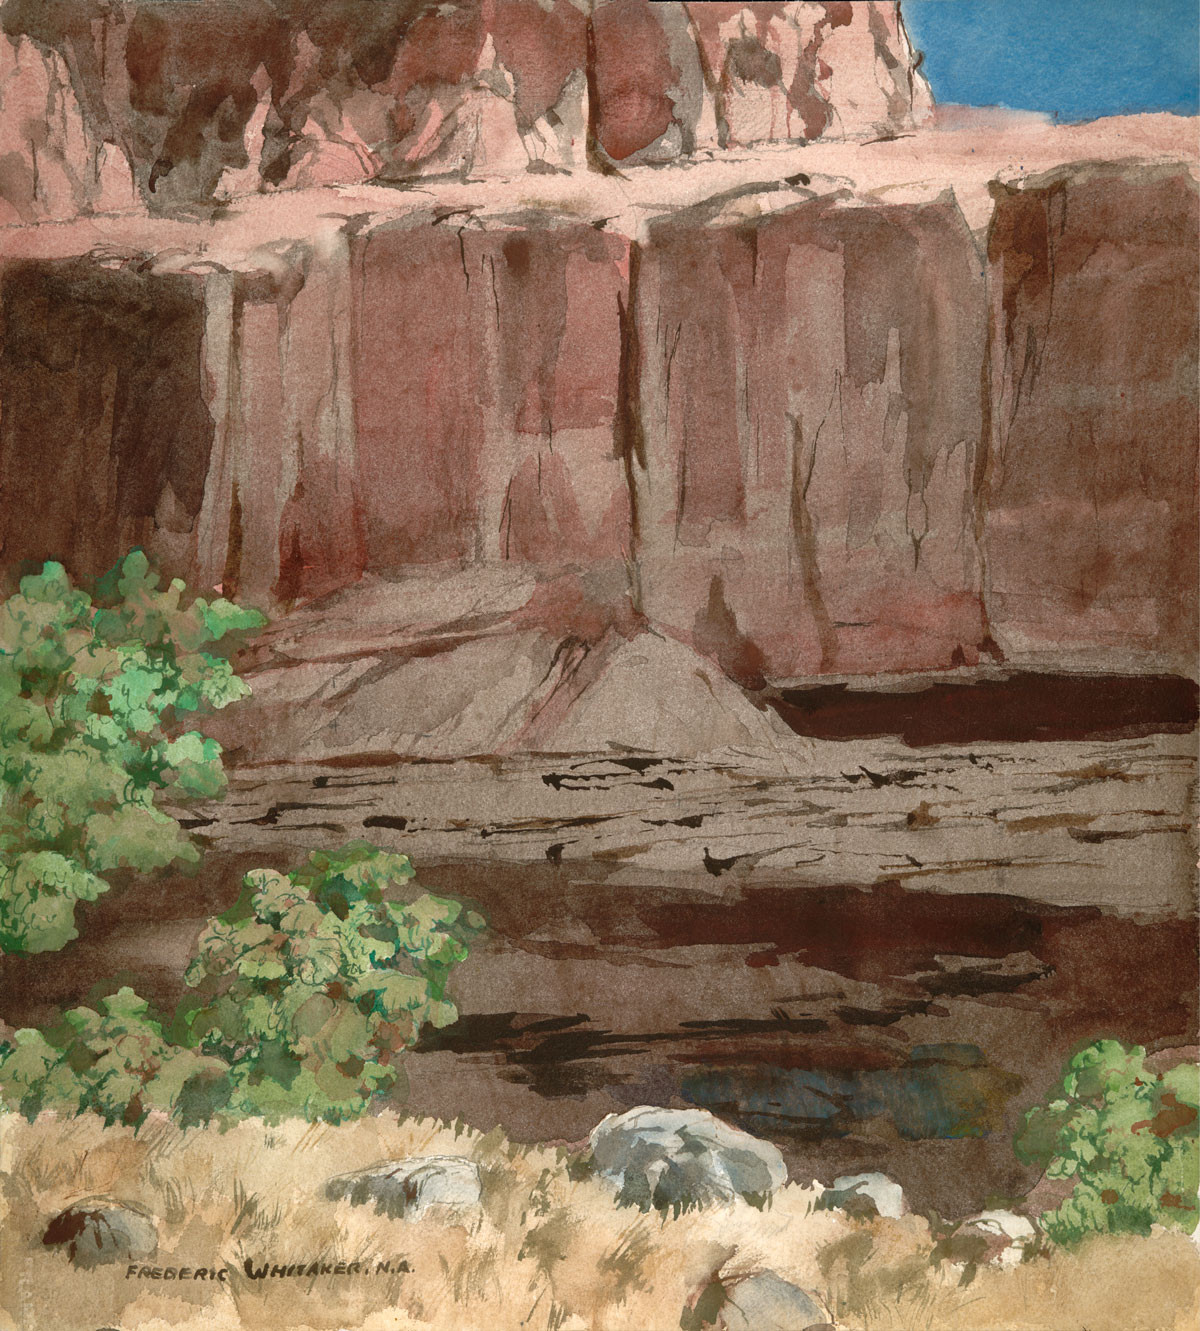 """""""Canyon de Chelly Memento 1975  © Frederic Whitaker N.A.  22x24.5 inches"""